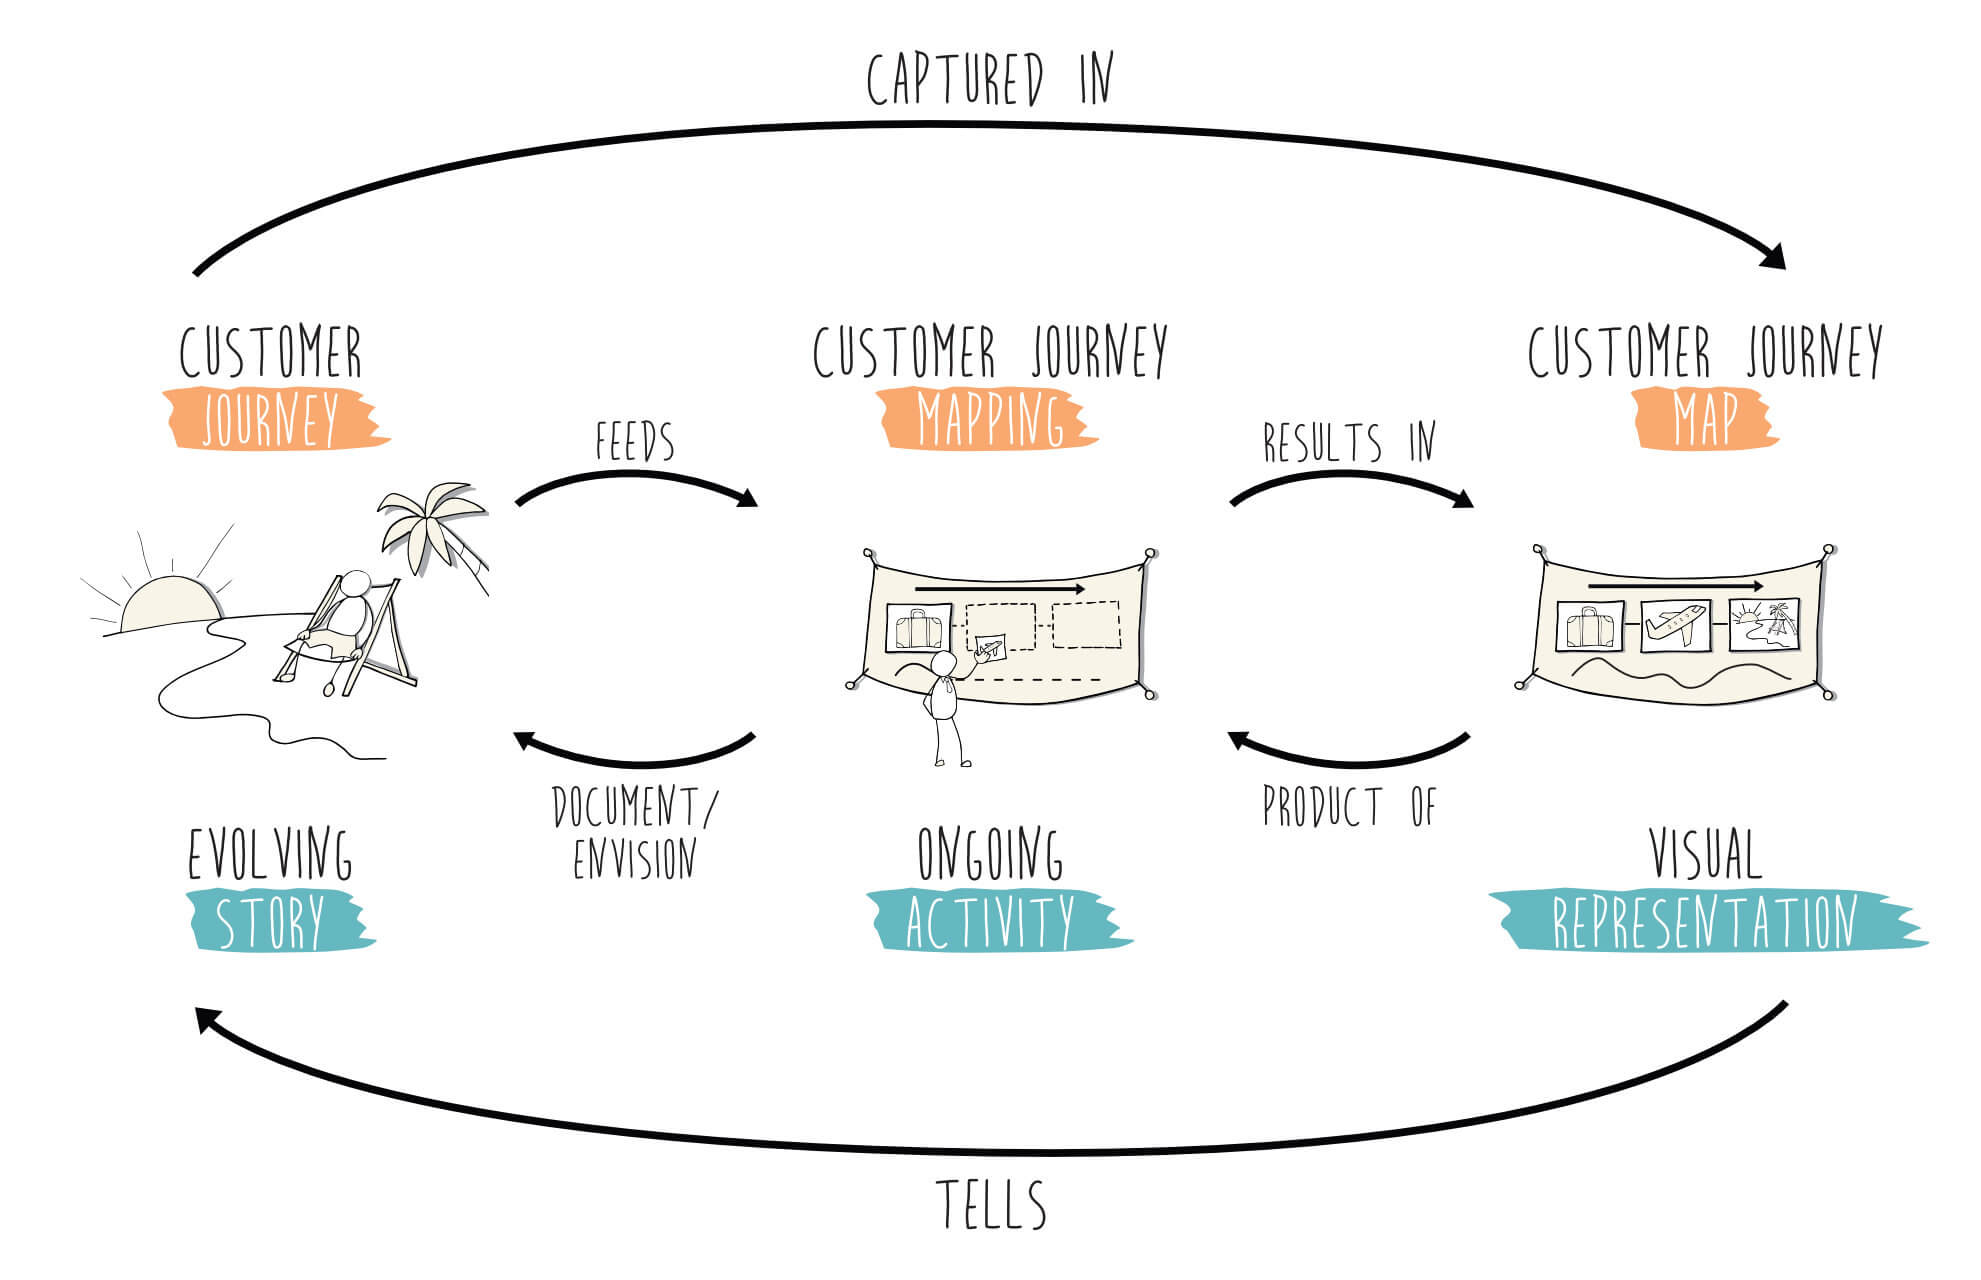 The relationship between Customer Journey Mapping, the Customer Journey and the Customer Journey Map